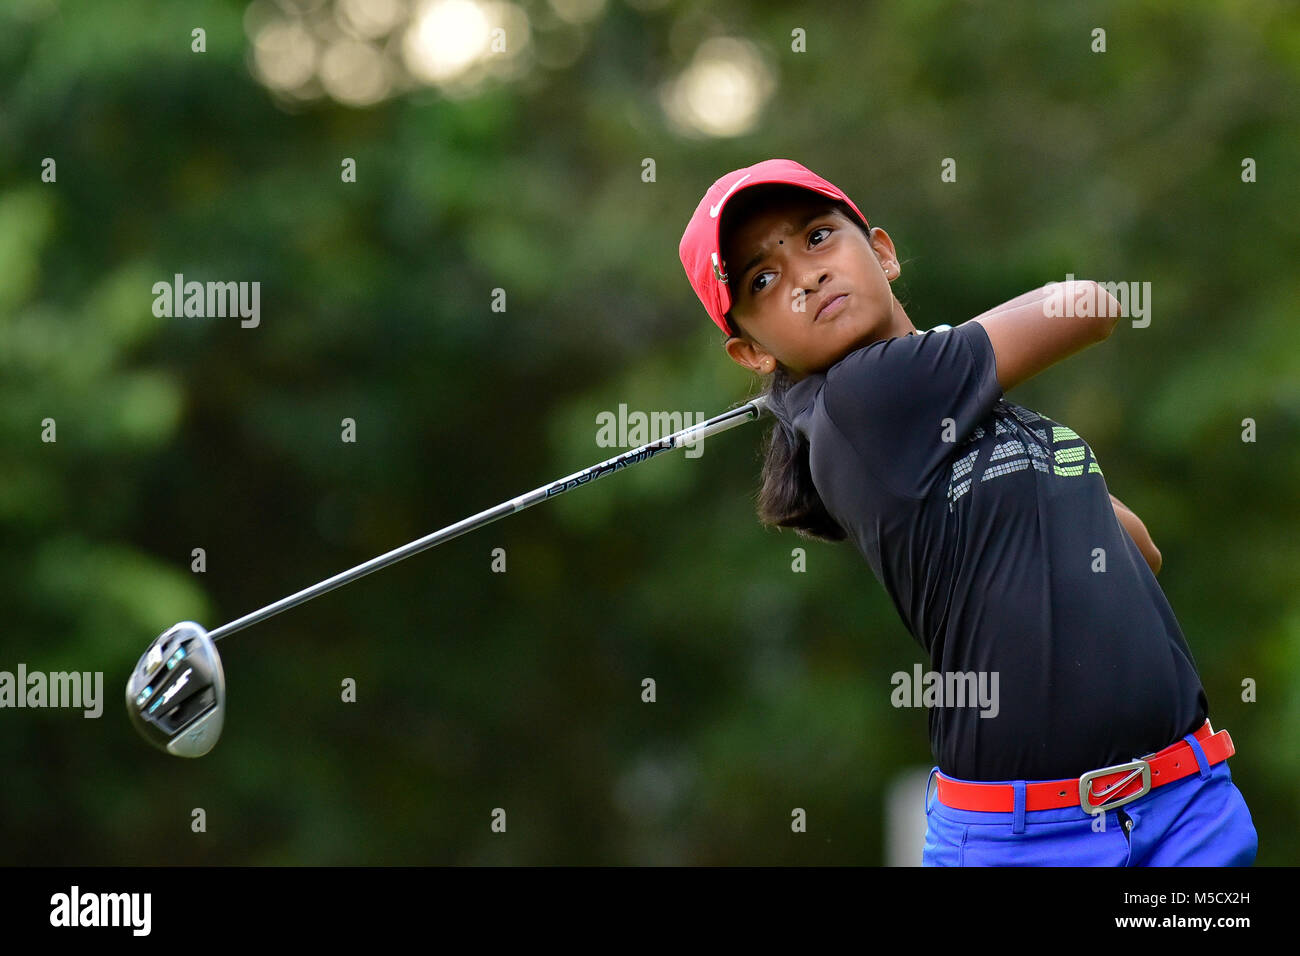 Danau, UKM Bangi - FEBRUARY 10: Kaathiyayani Gunasegar watches her tee shot on the 11th hole during Round One of - Stock Image